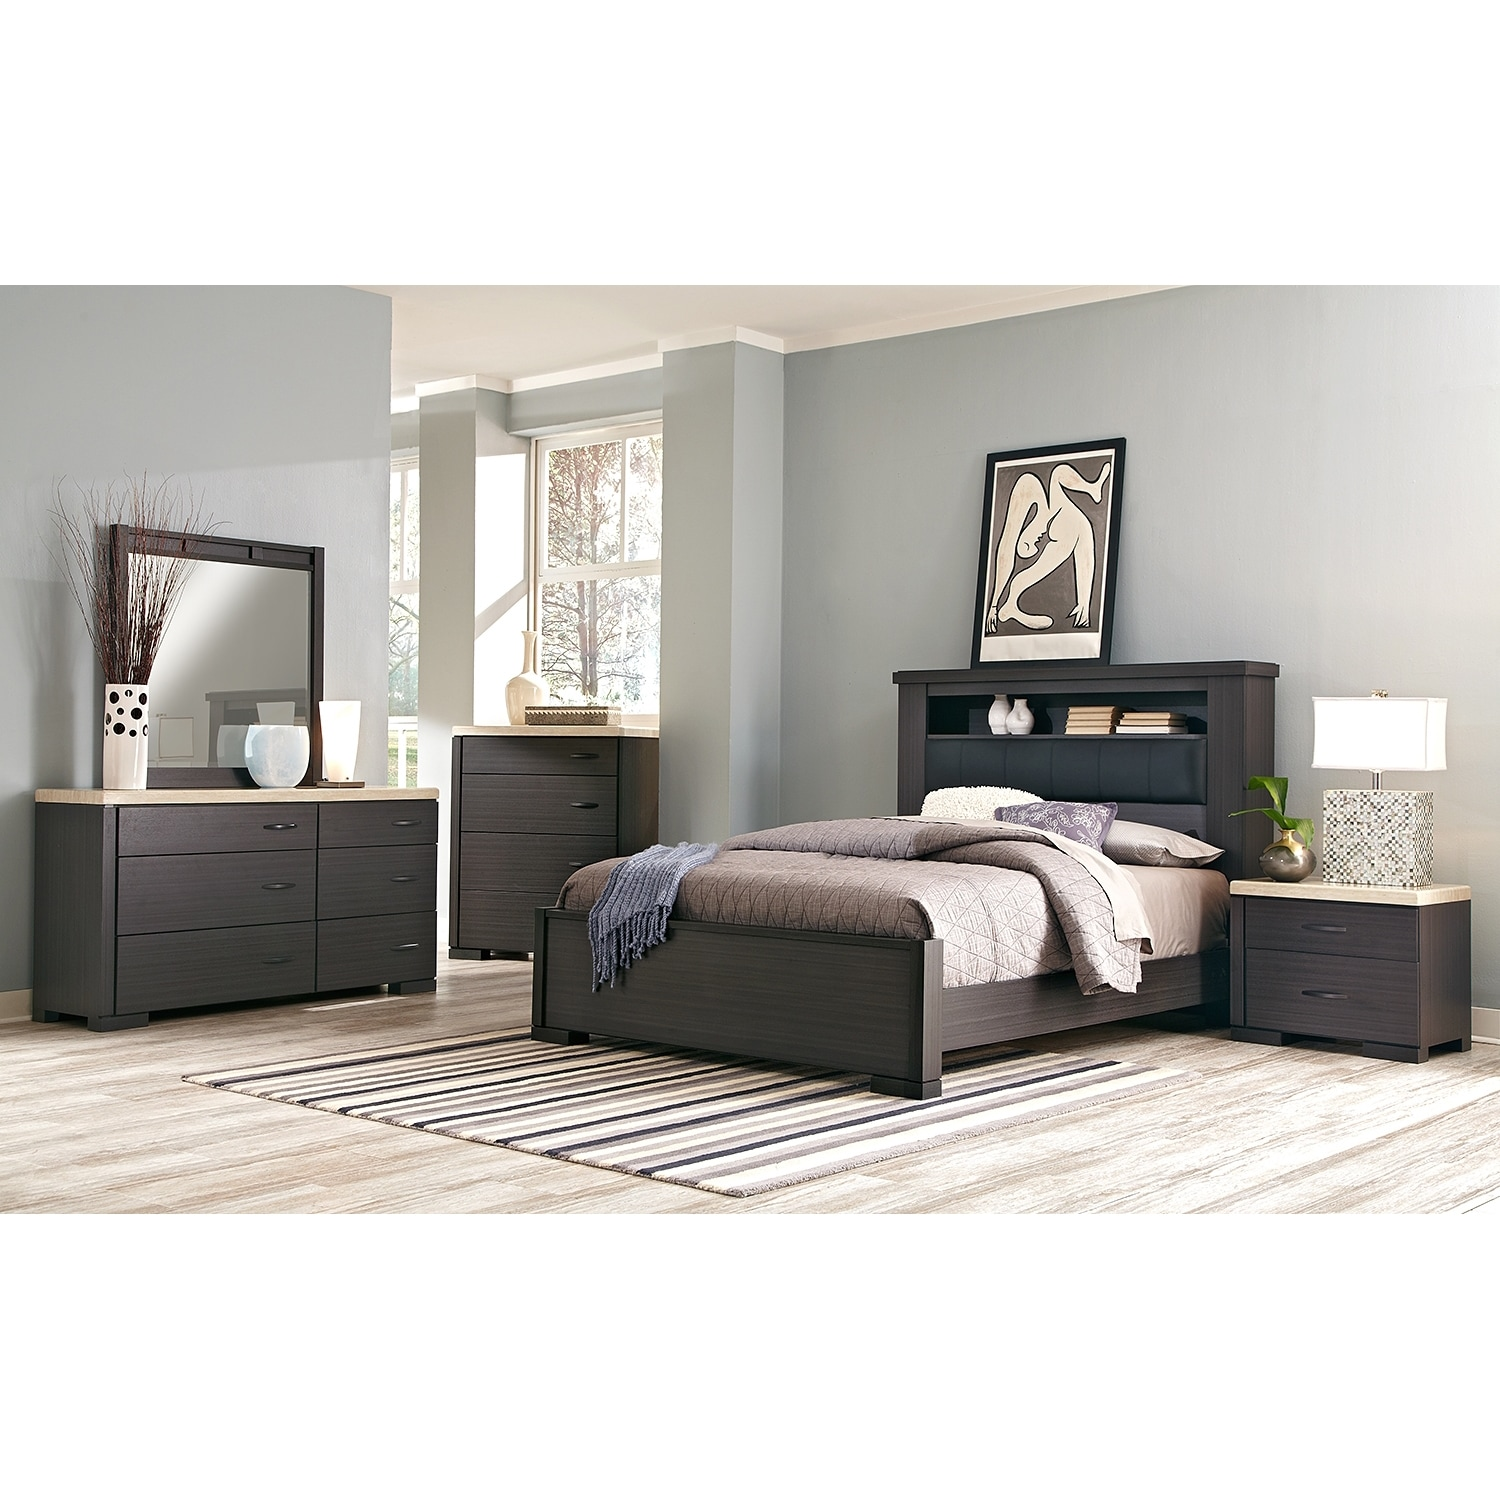 Camino 7-Piece Queen Bedroom Set